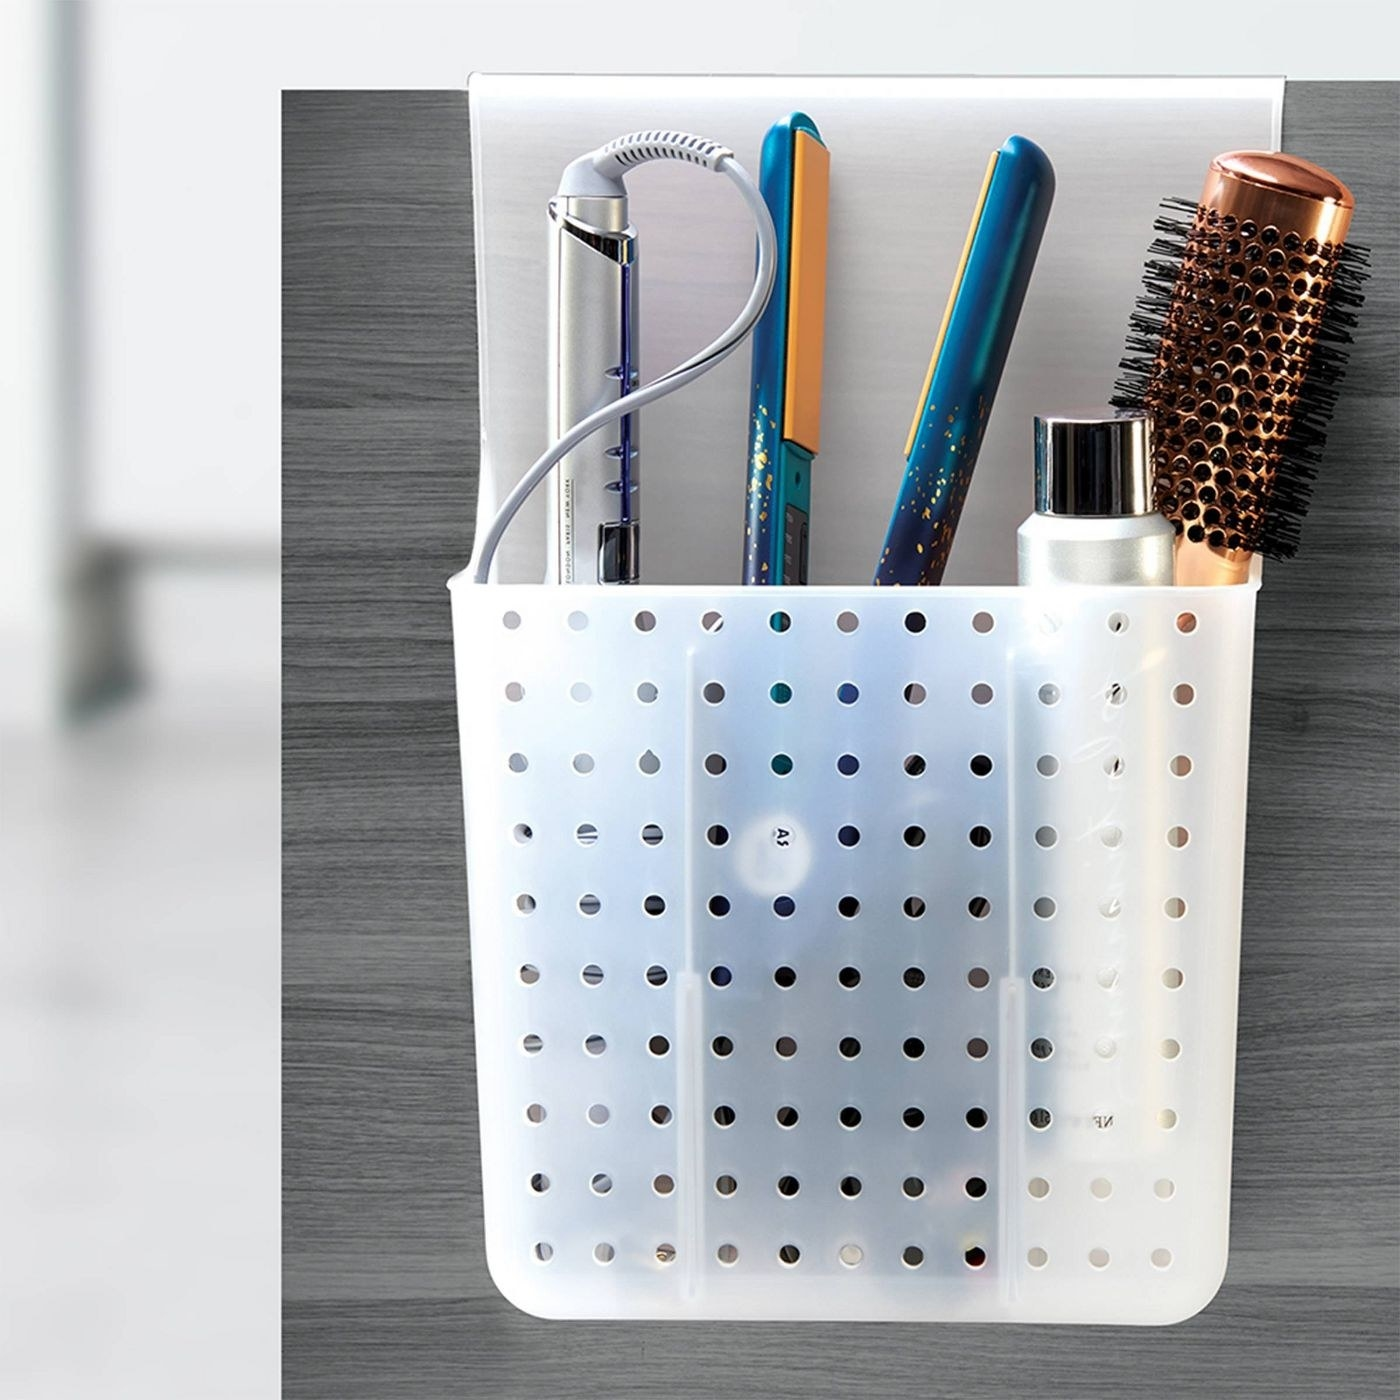 hair tool organizer on the back of a cabinet door with flat irons and brushes in them